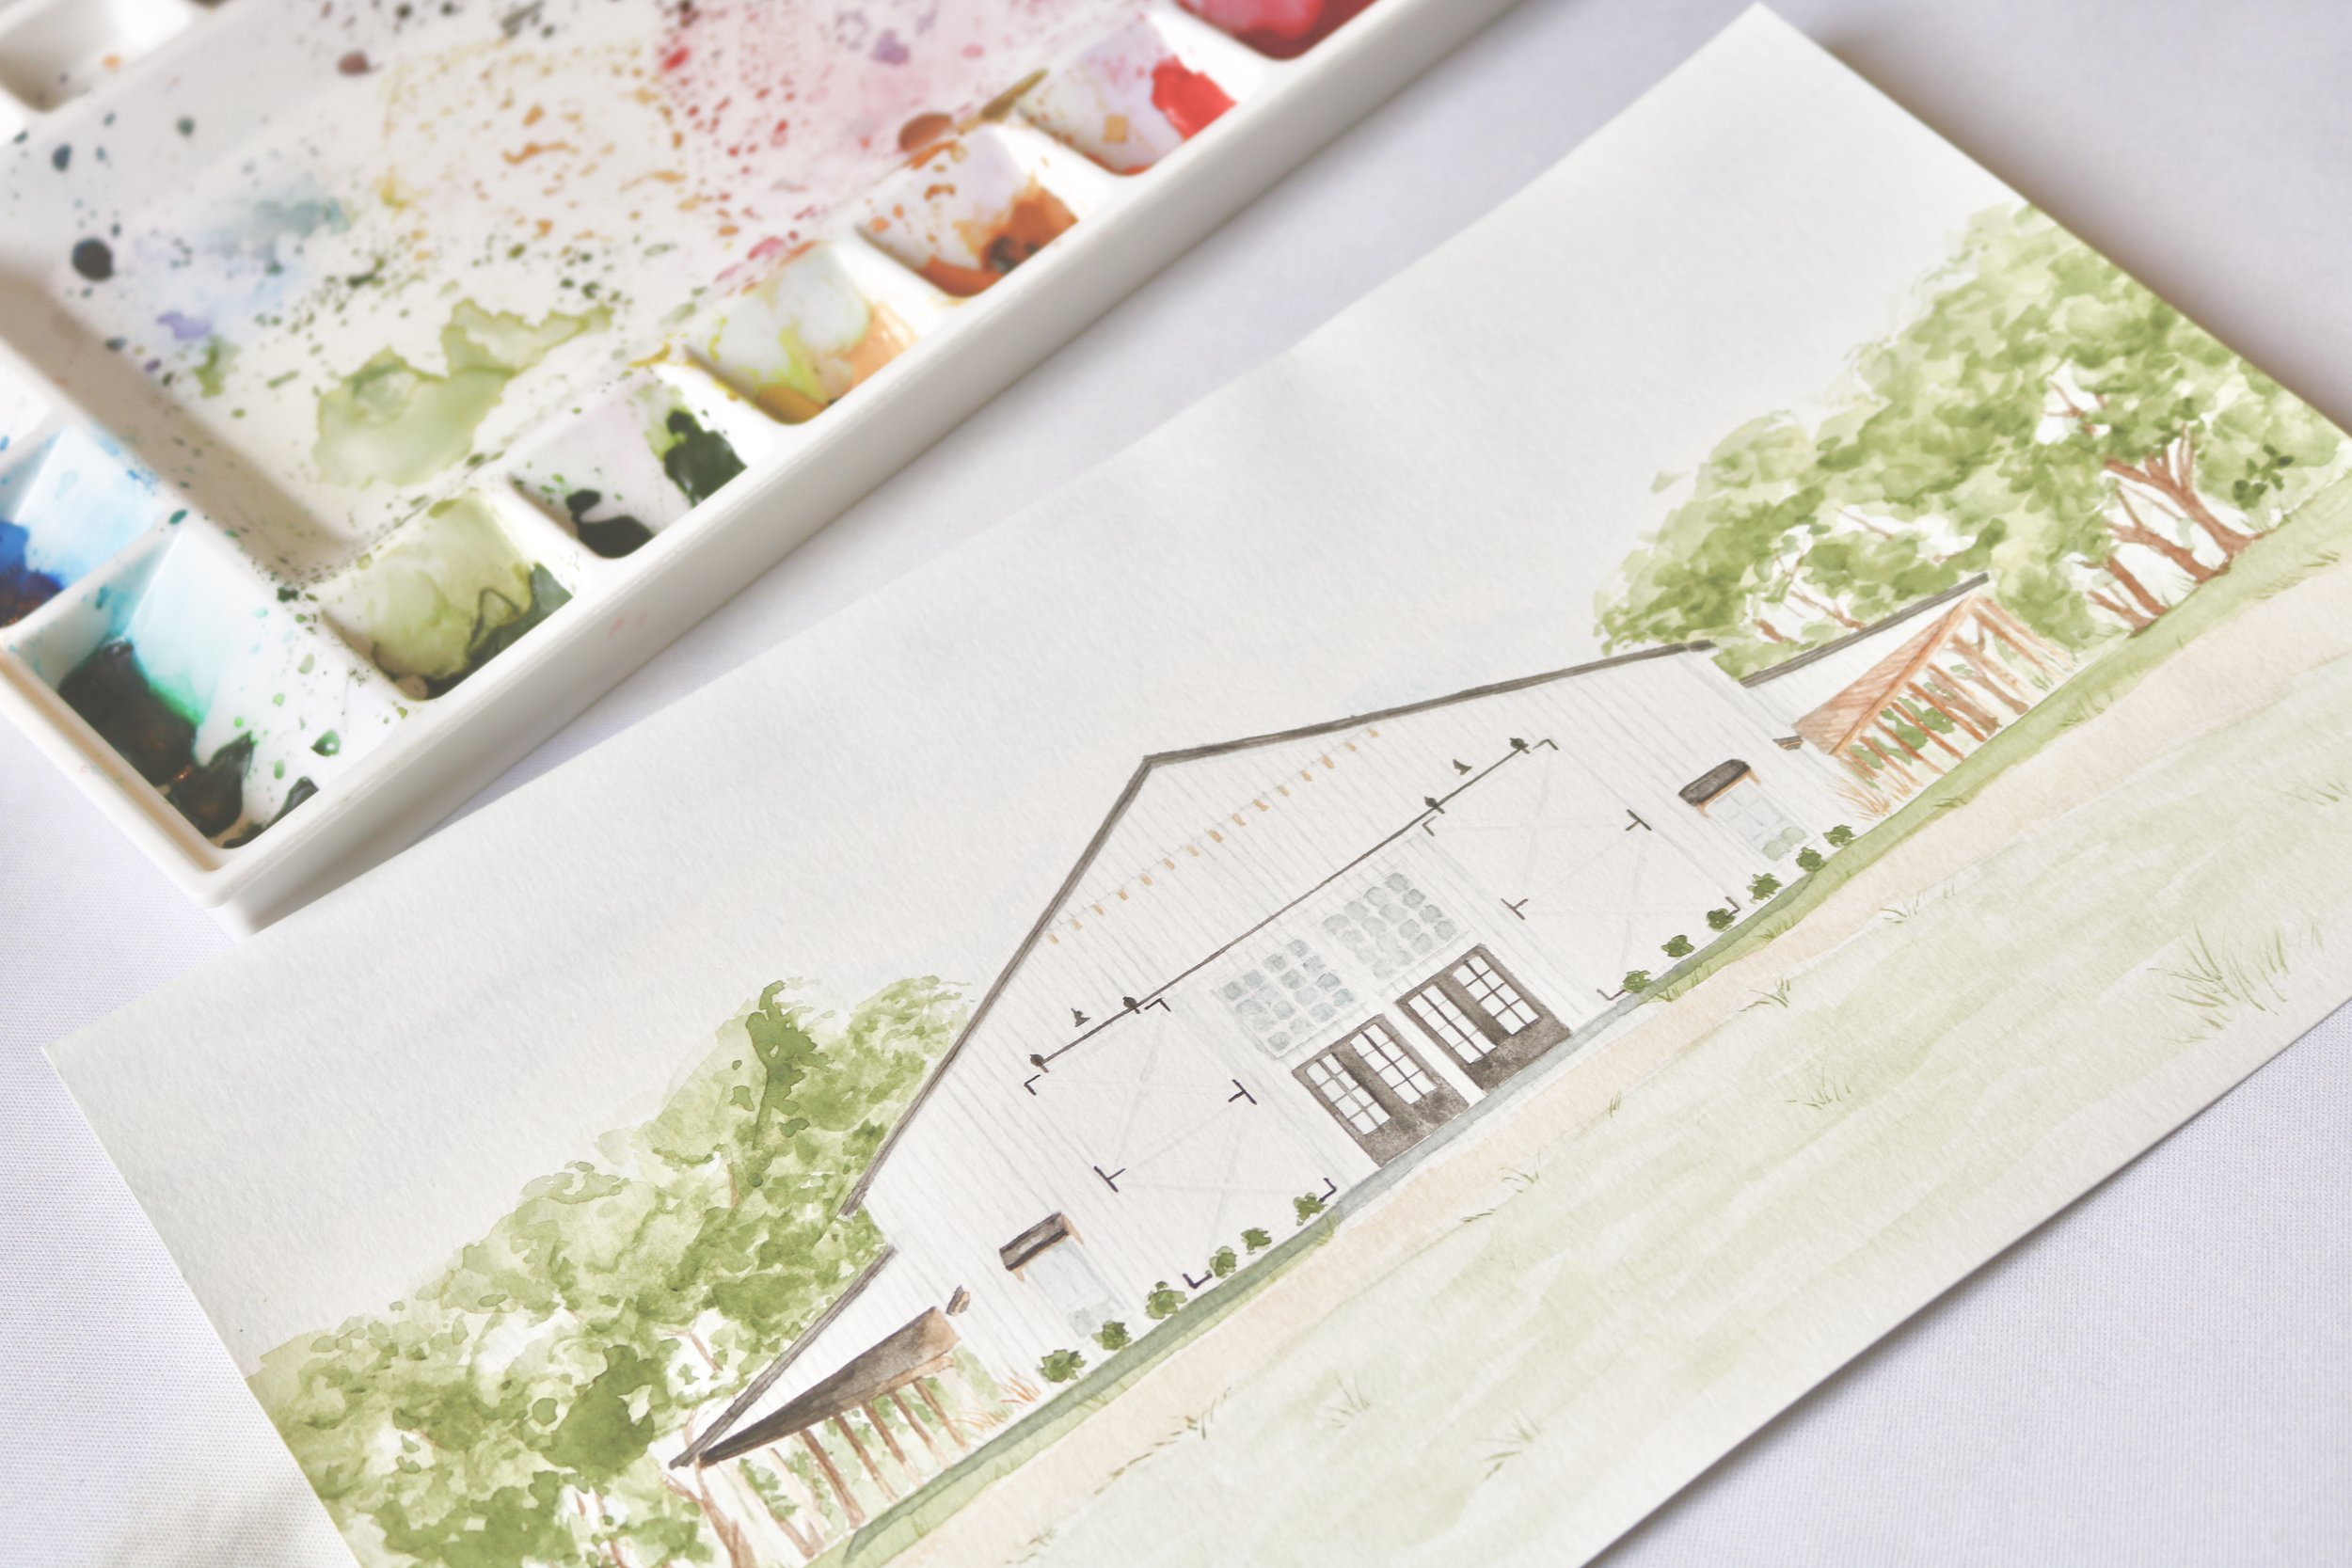 Emilime Designs B@GH Venue Watercolor.jpeg